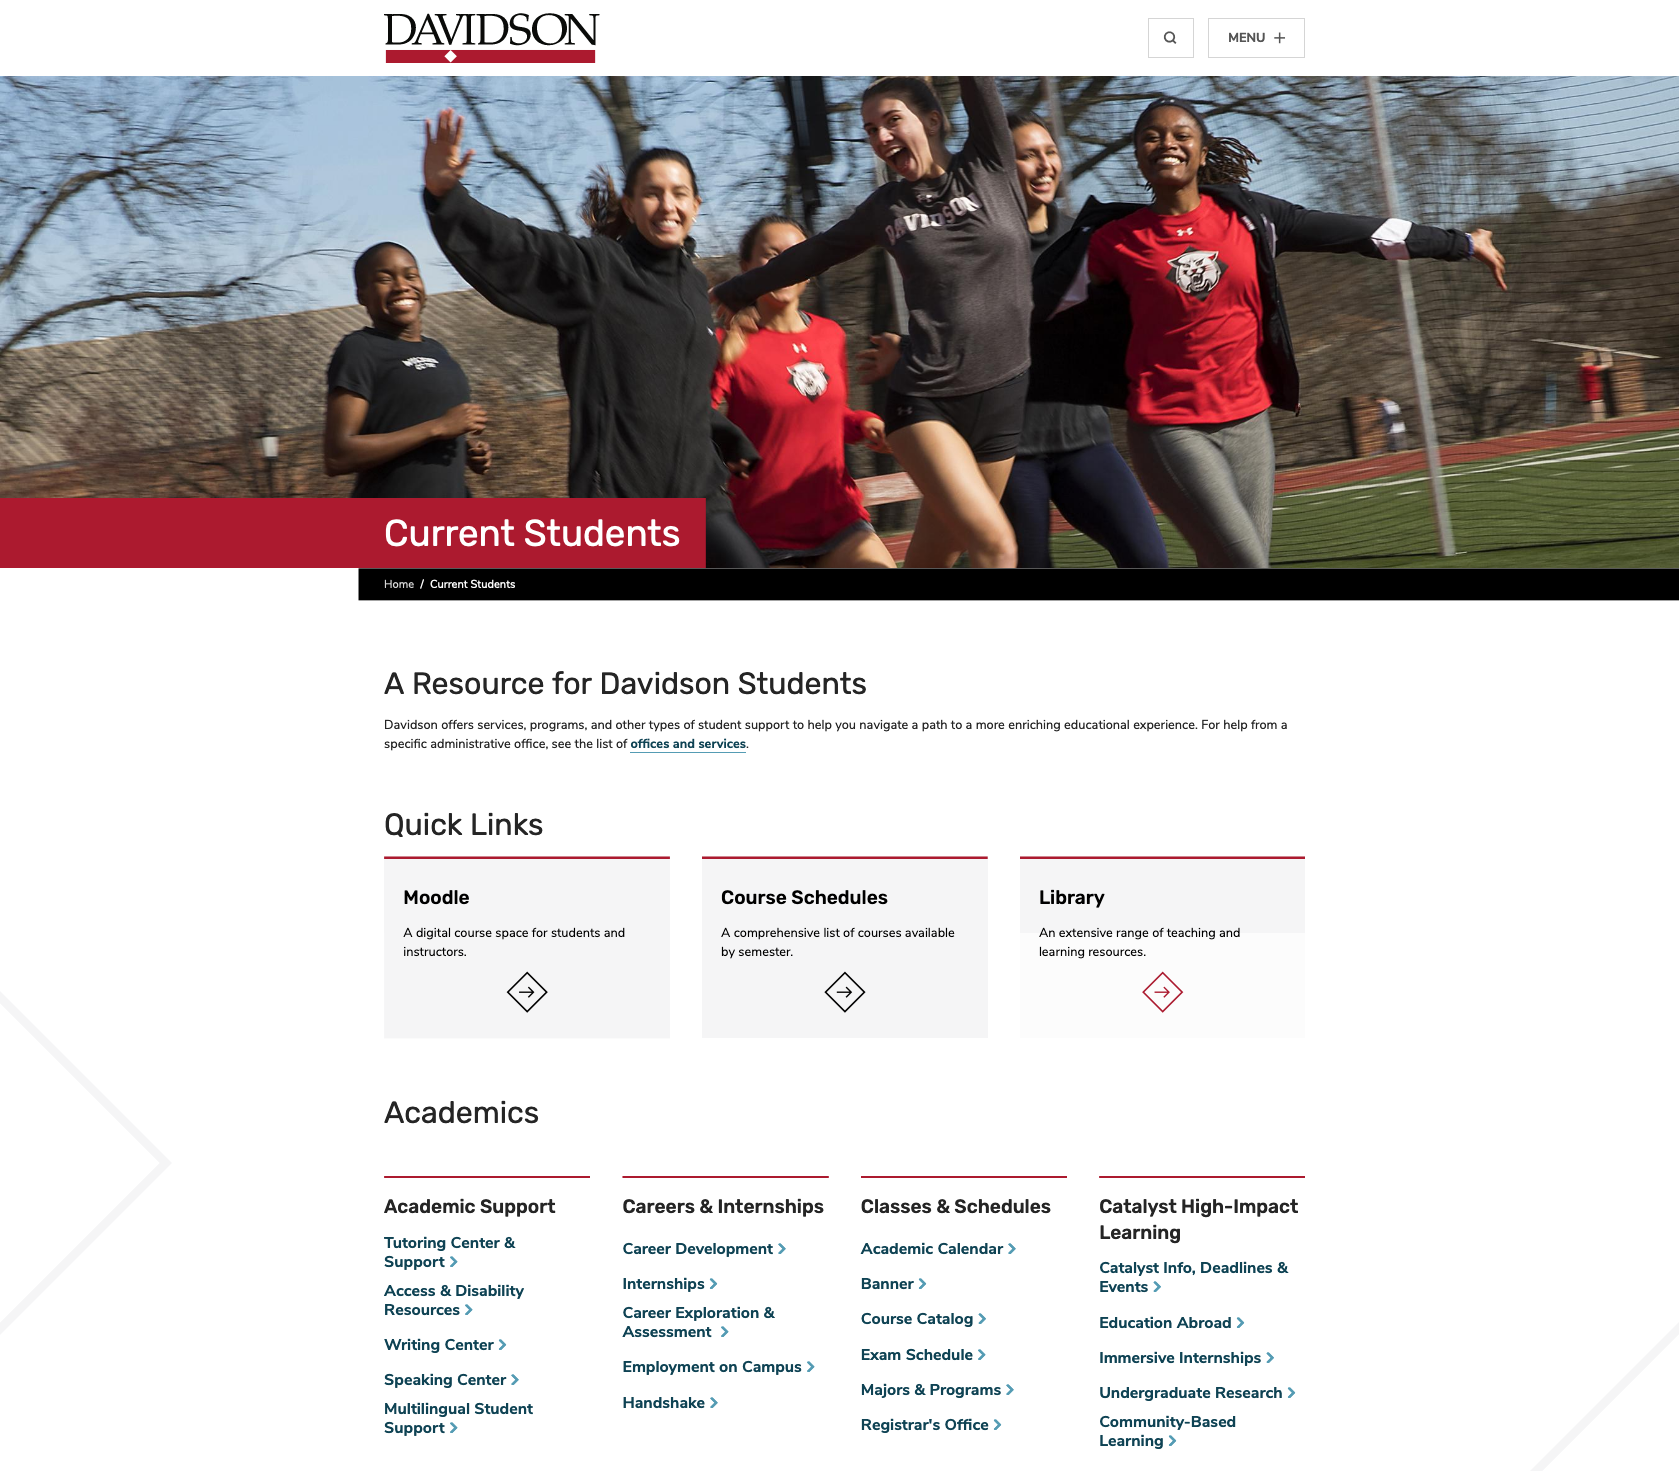 Current Students Gateway Page on Davidson.edu